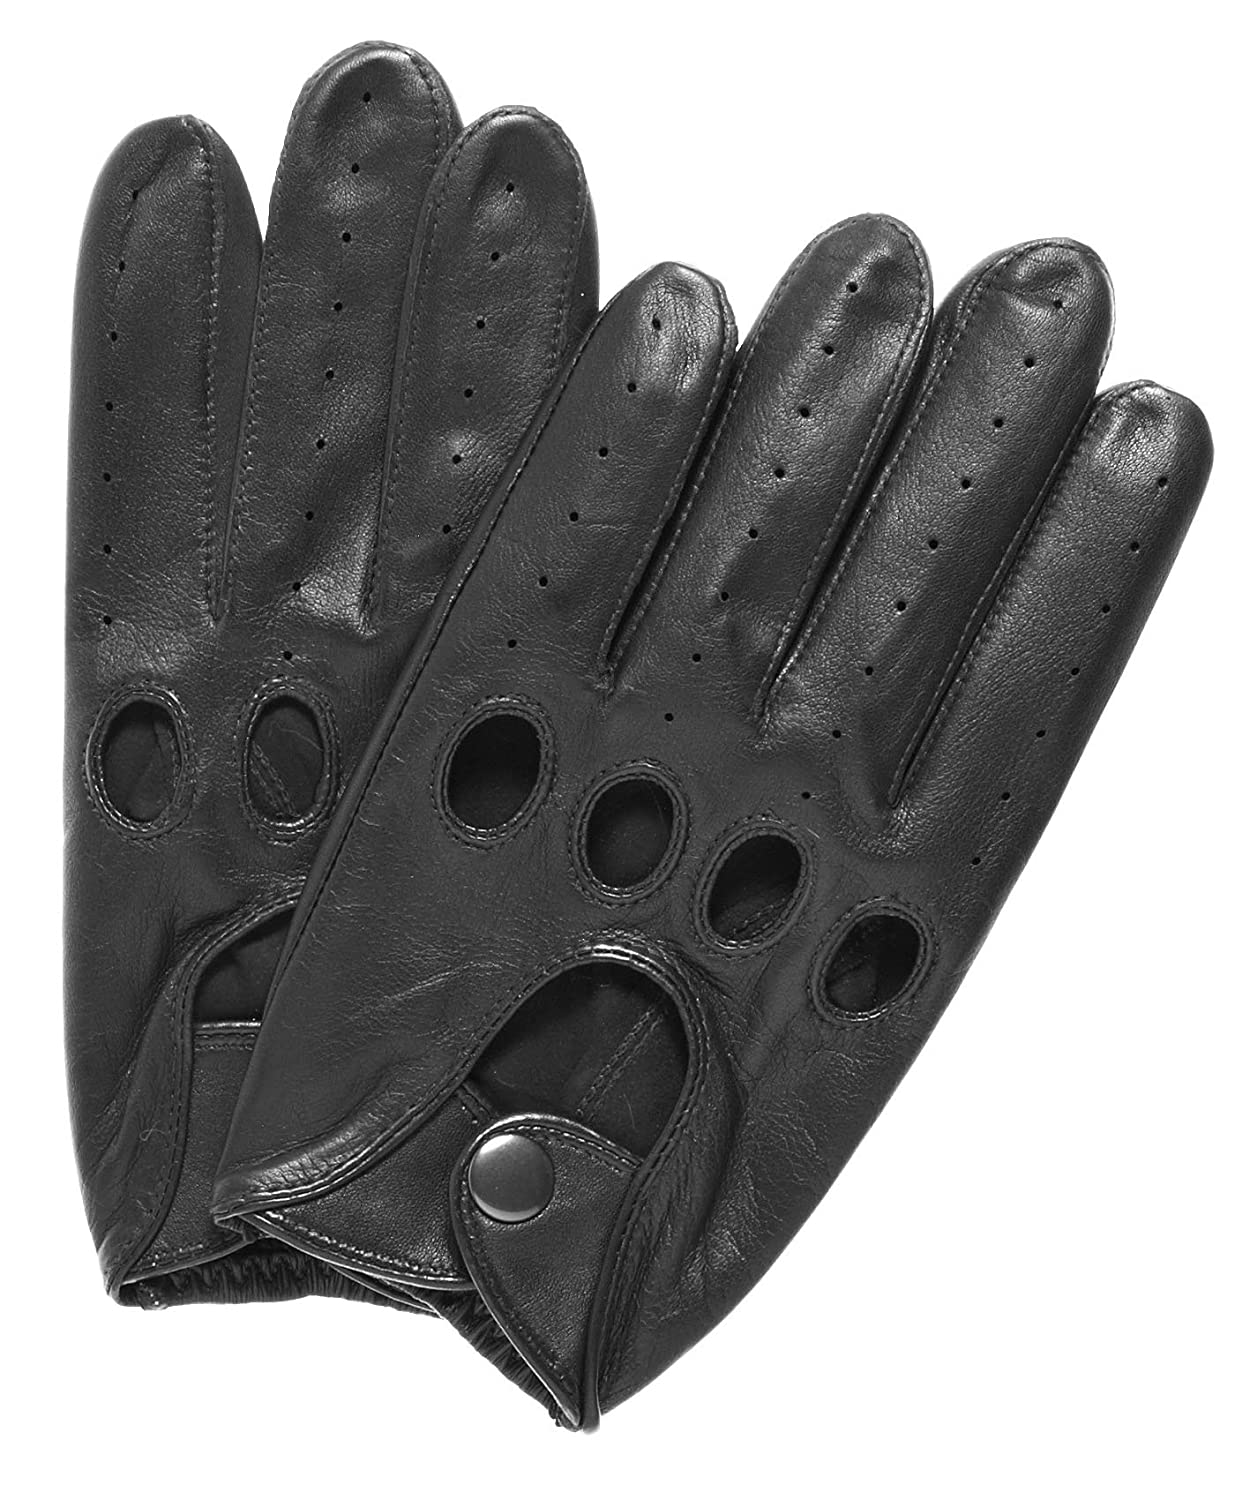 Leather driving gloves mercedes - Pratt And Hart Traditional Leather Driving Gloves Size S Color Black At Amazon Men S Clothing Store Cold Weather Gloves